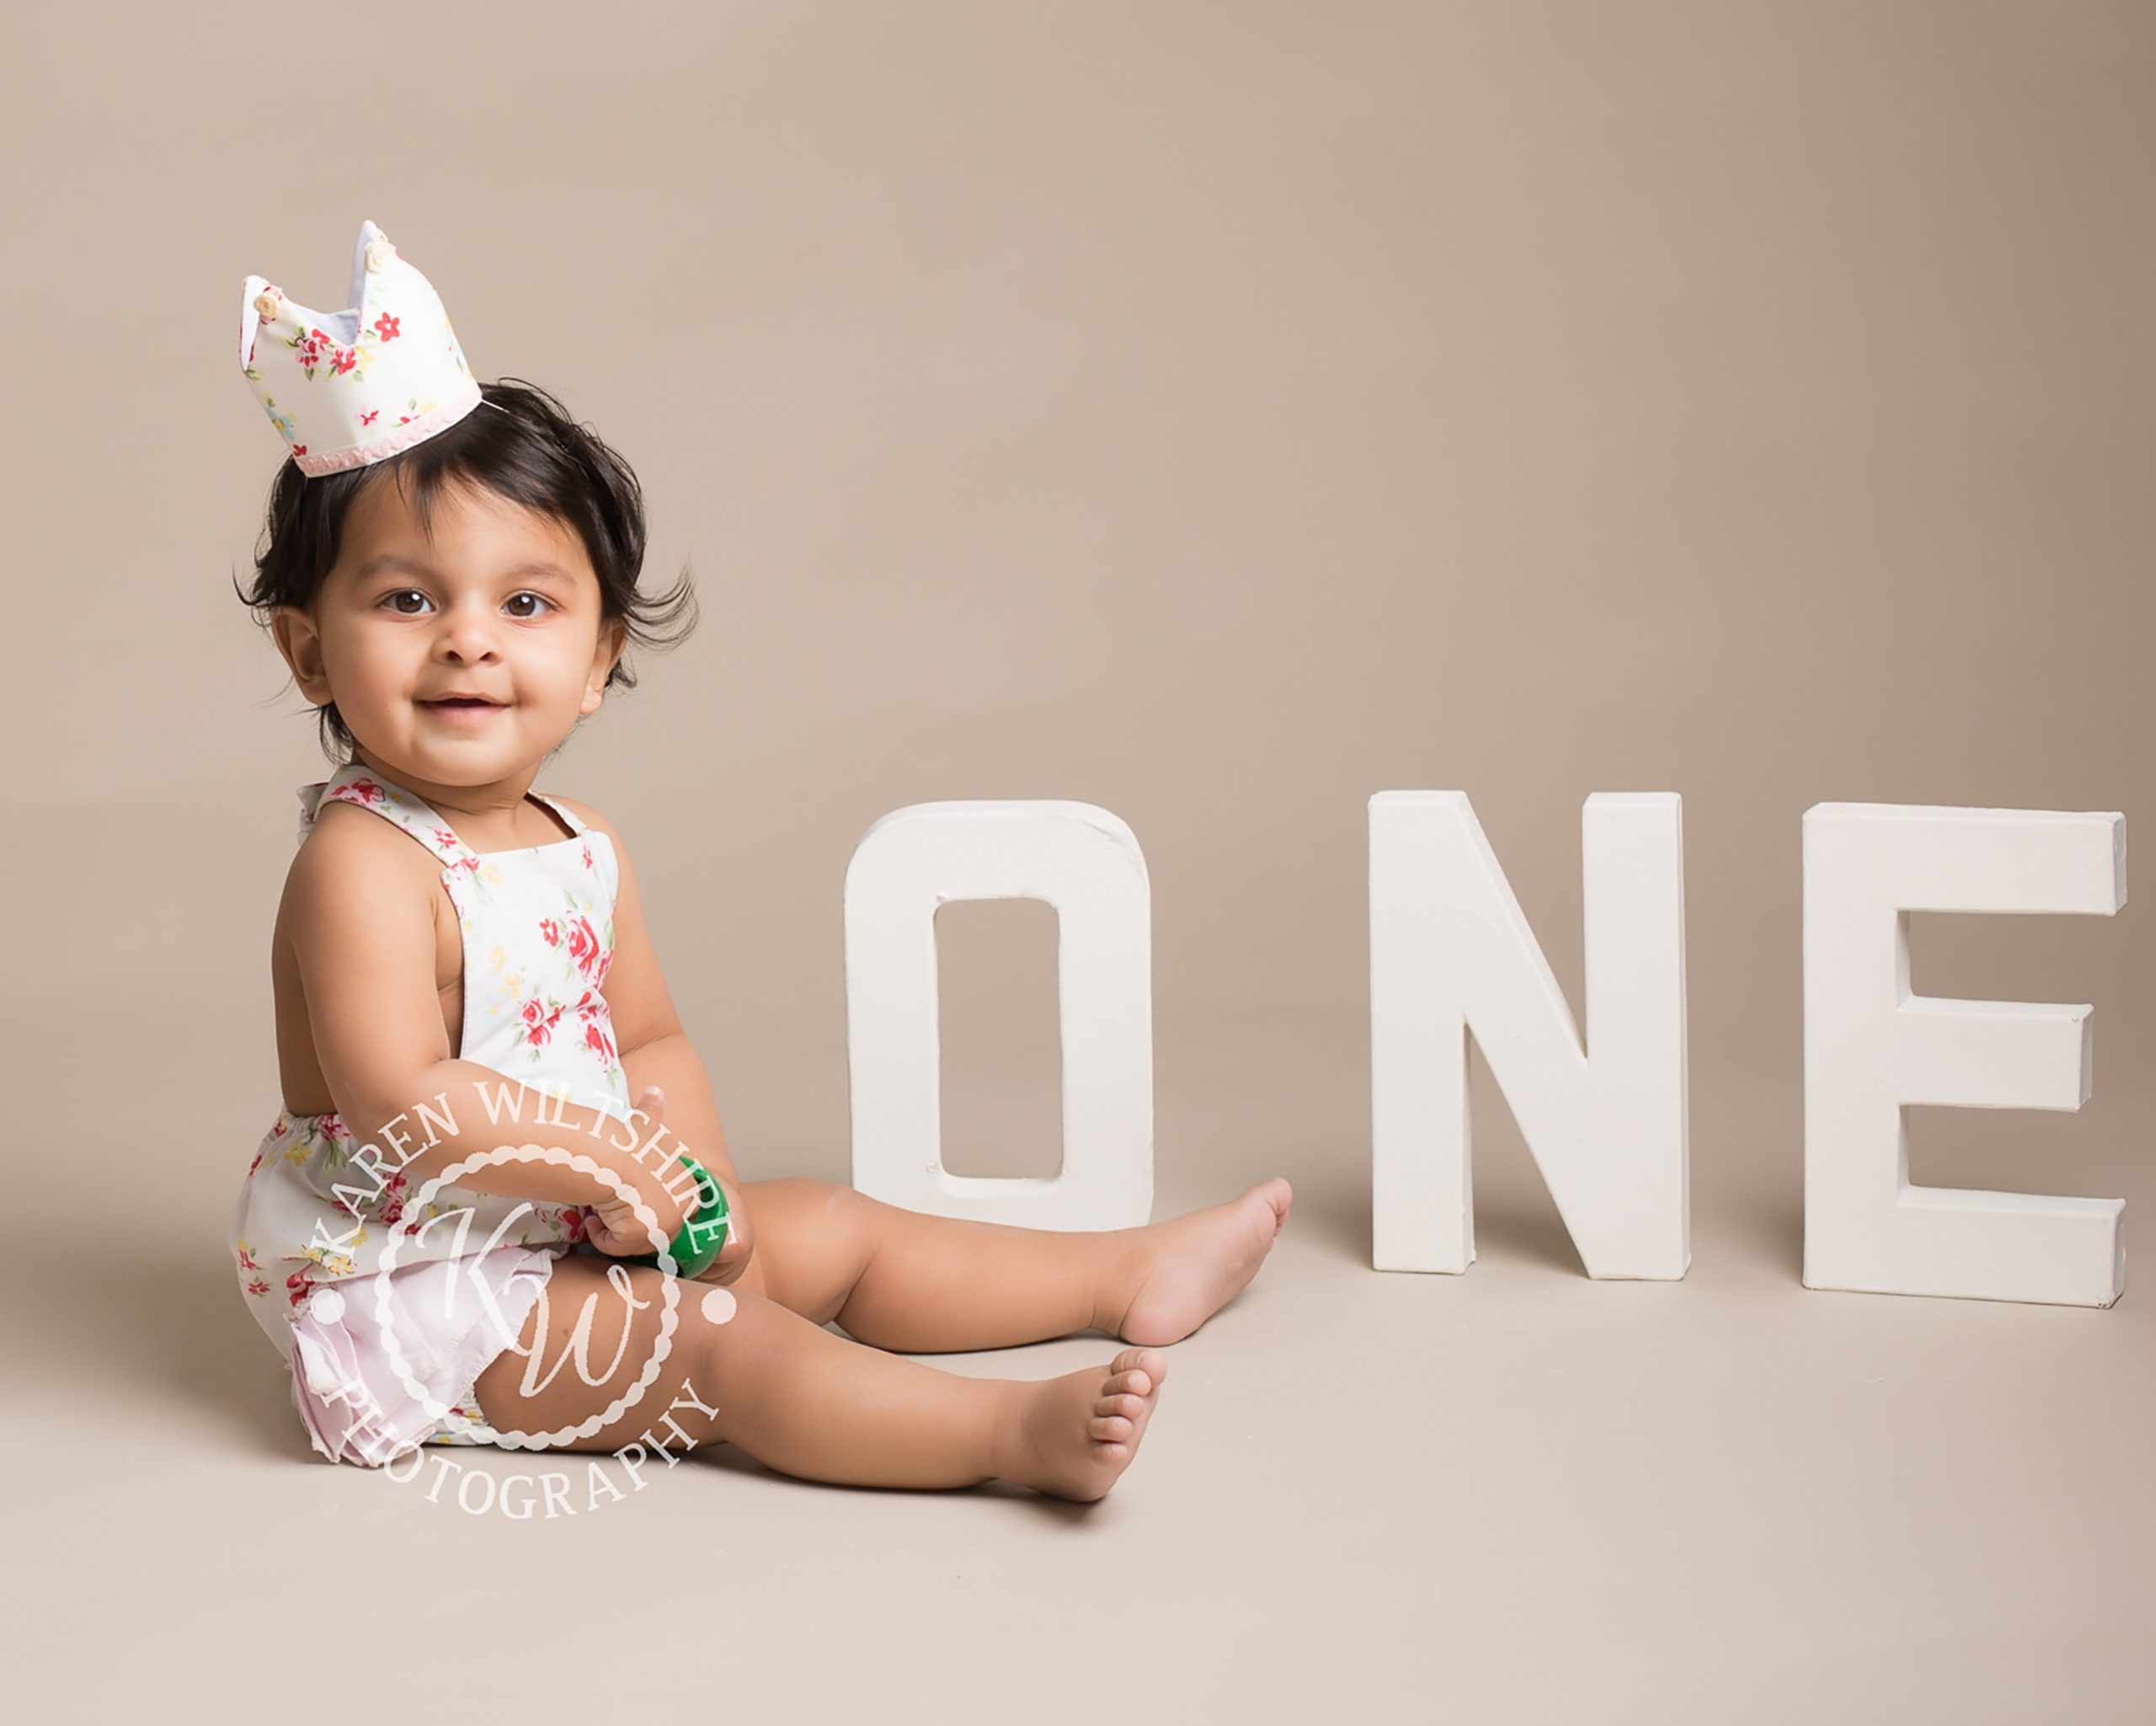 Baby girl poses next the ONE letters